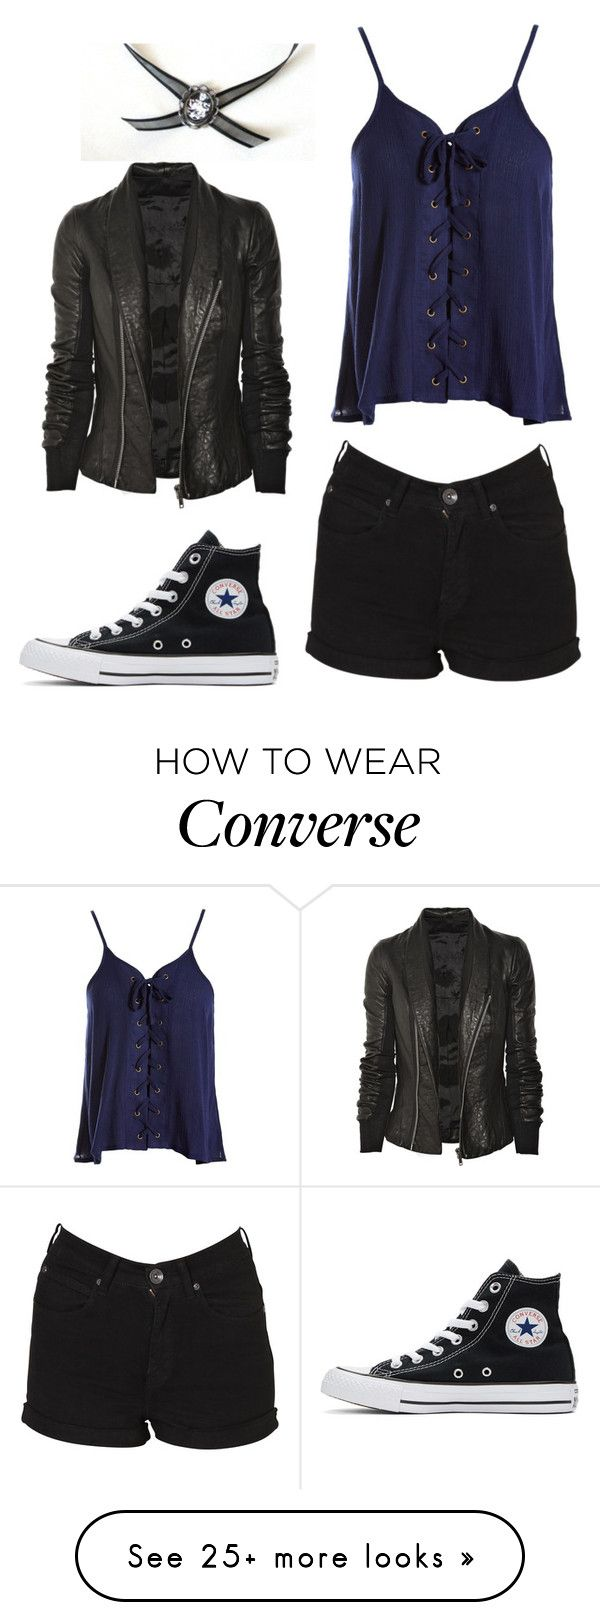 """Untitled #1743"" by laurenwolfchild on Polyvore featuring Dr. Denim, Sans Souci, Converse and Rick Owens"